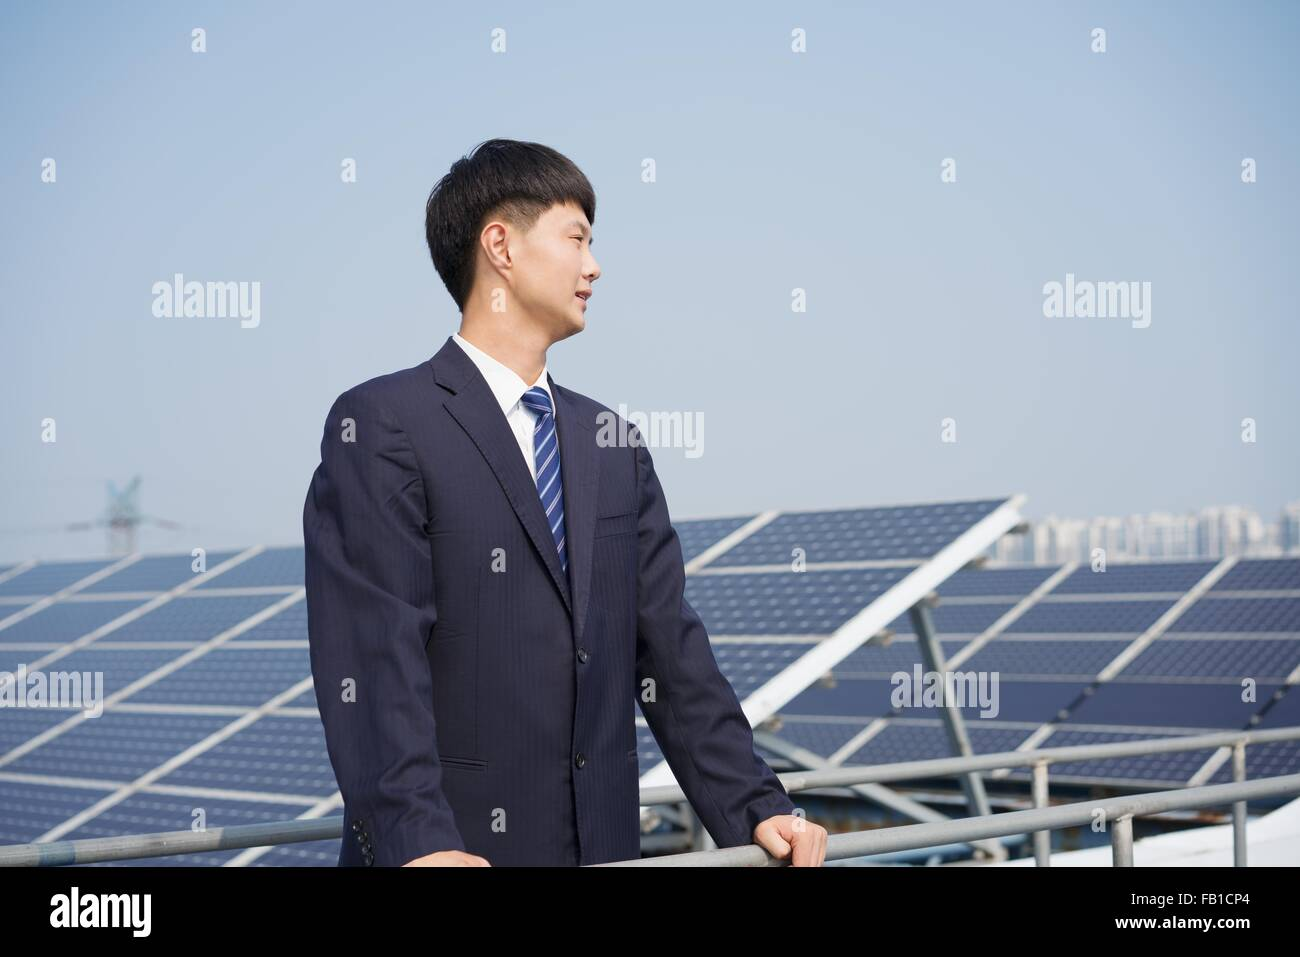 Businessman on roof of solar panel assembly factory, Solar Valley, Dezhou, China - Stock Image